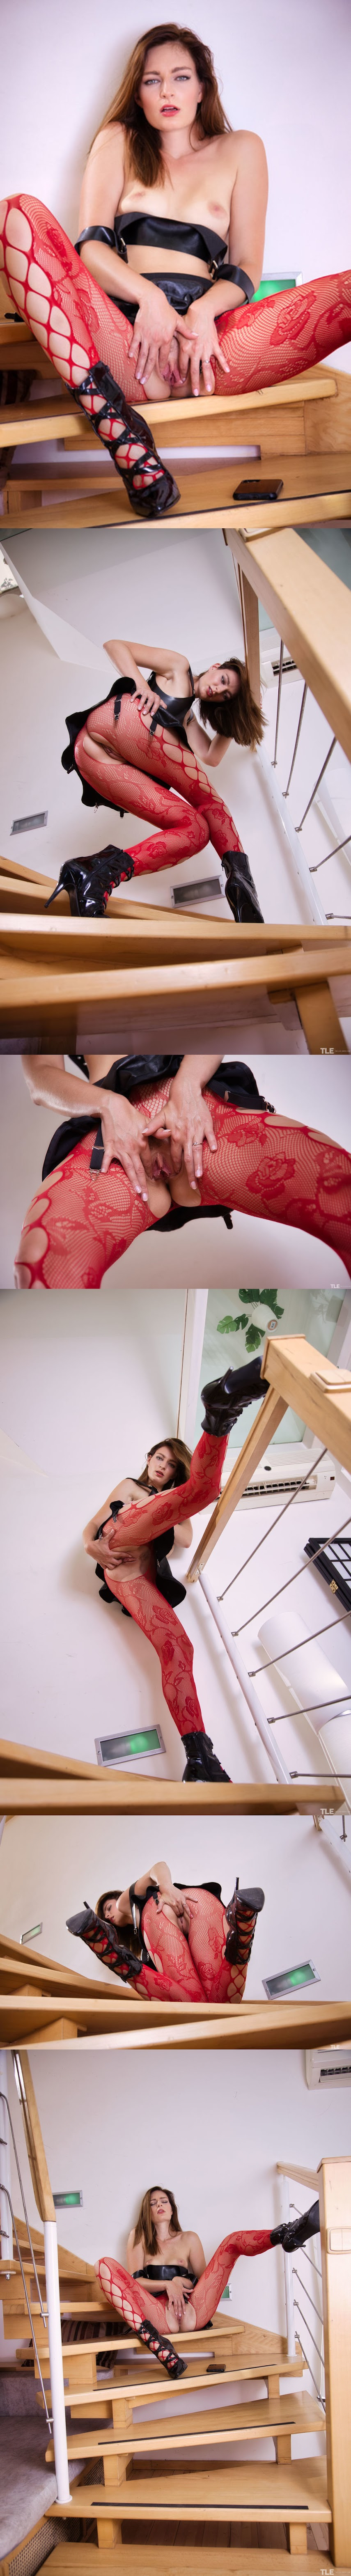 5680282381 [TheLifeErotic] Lee Anne - Up The Skirt 1 thelifeerotic 09200